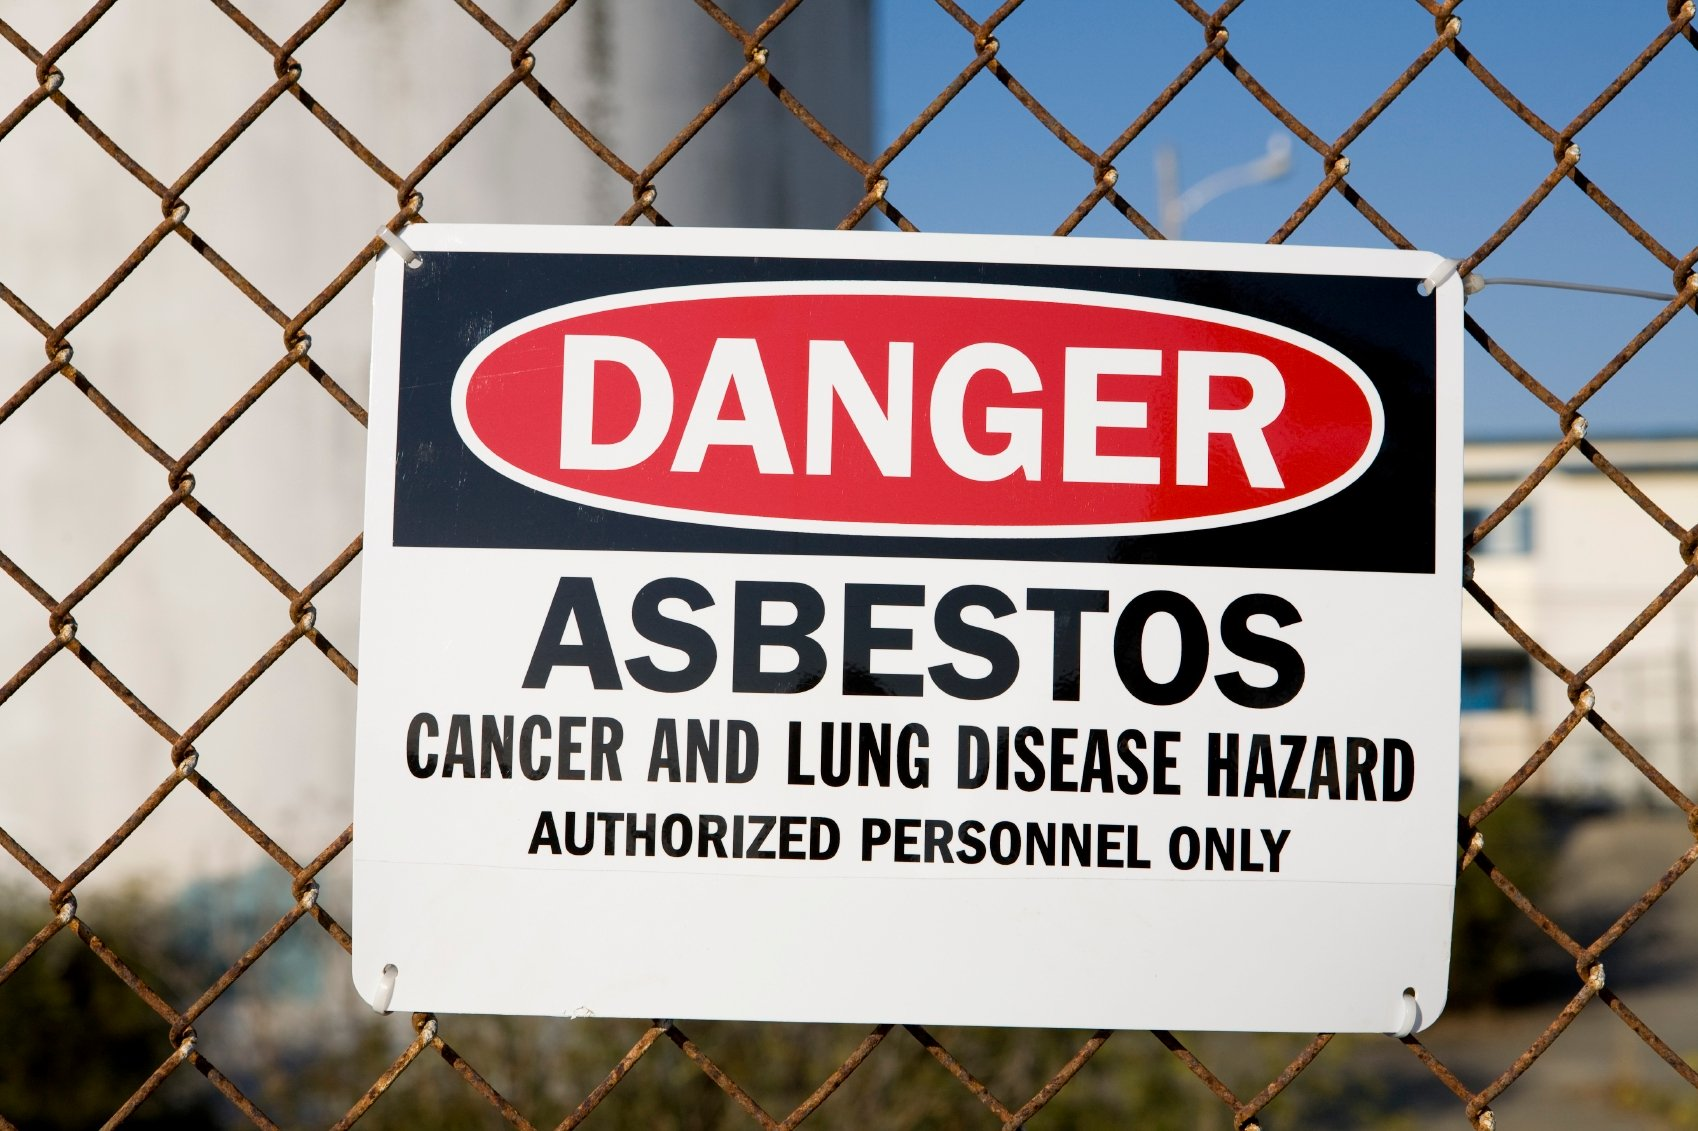 Hazardous Materials Management - Asbestos Warning